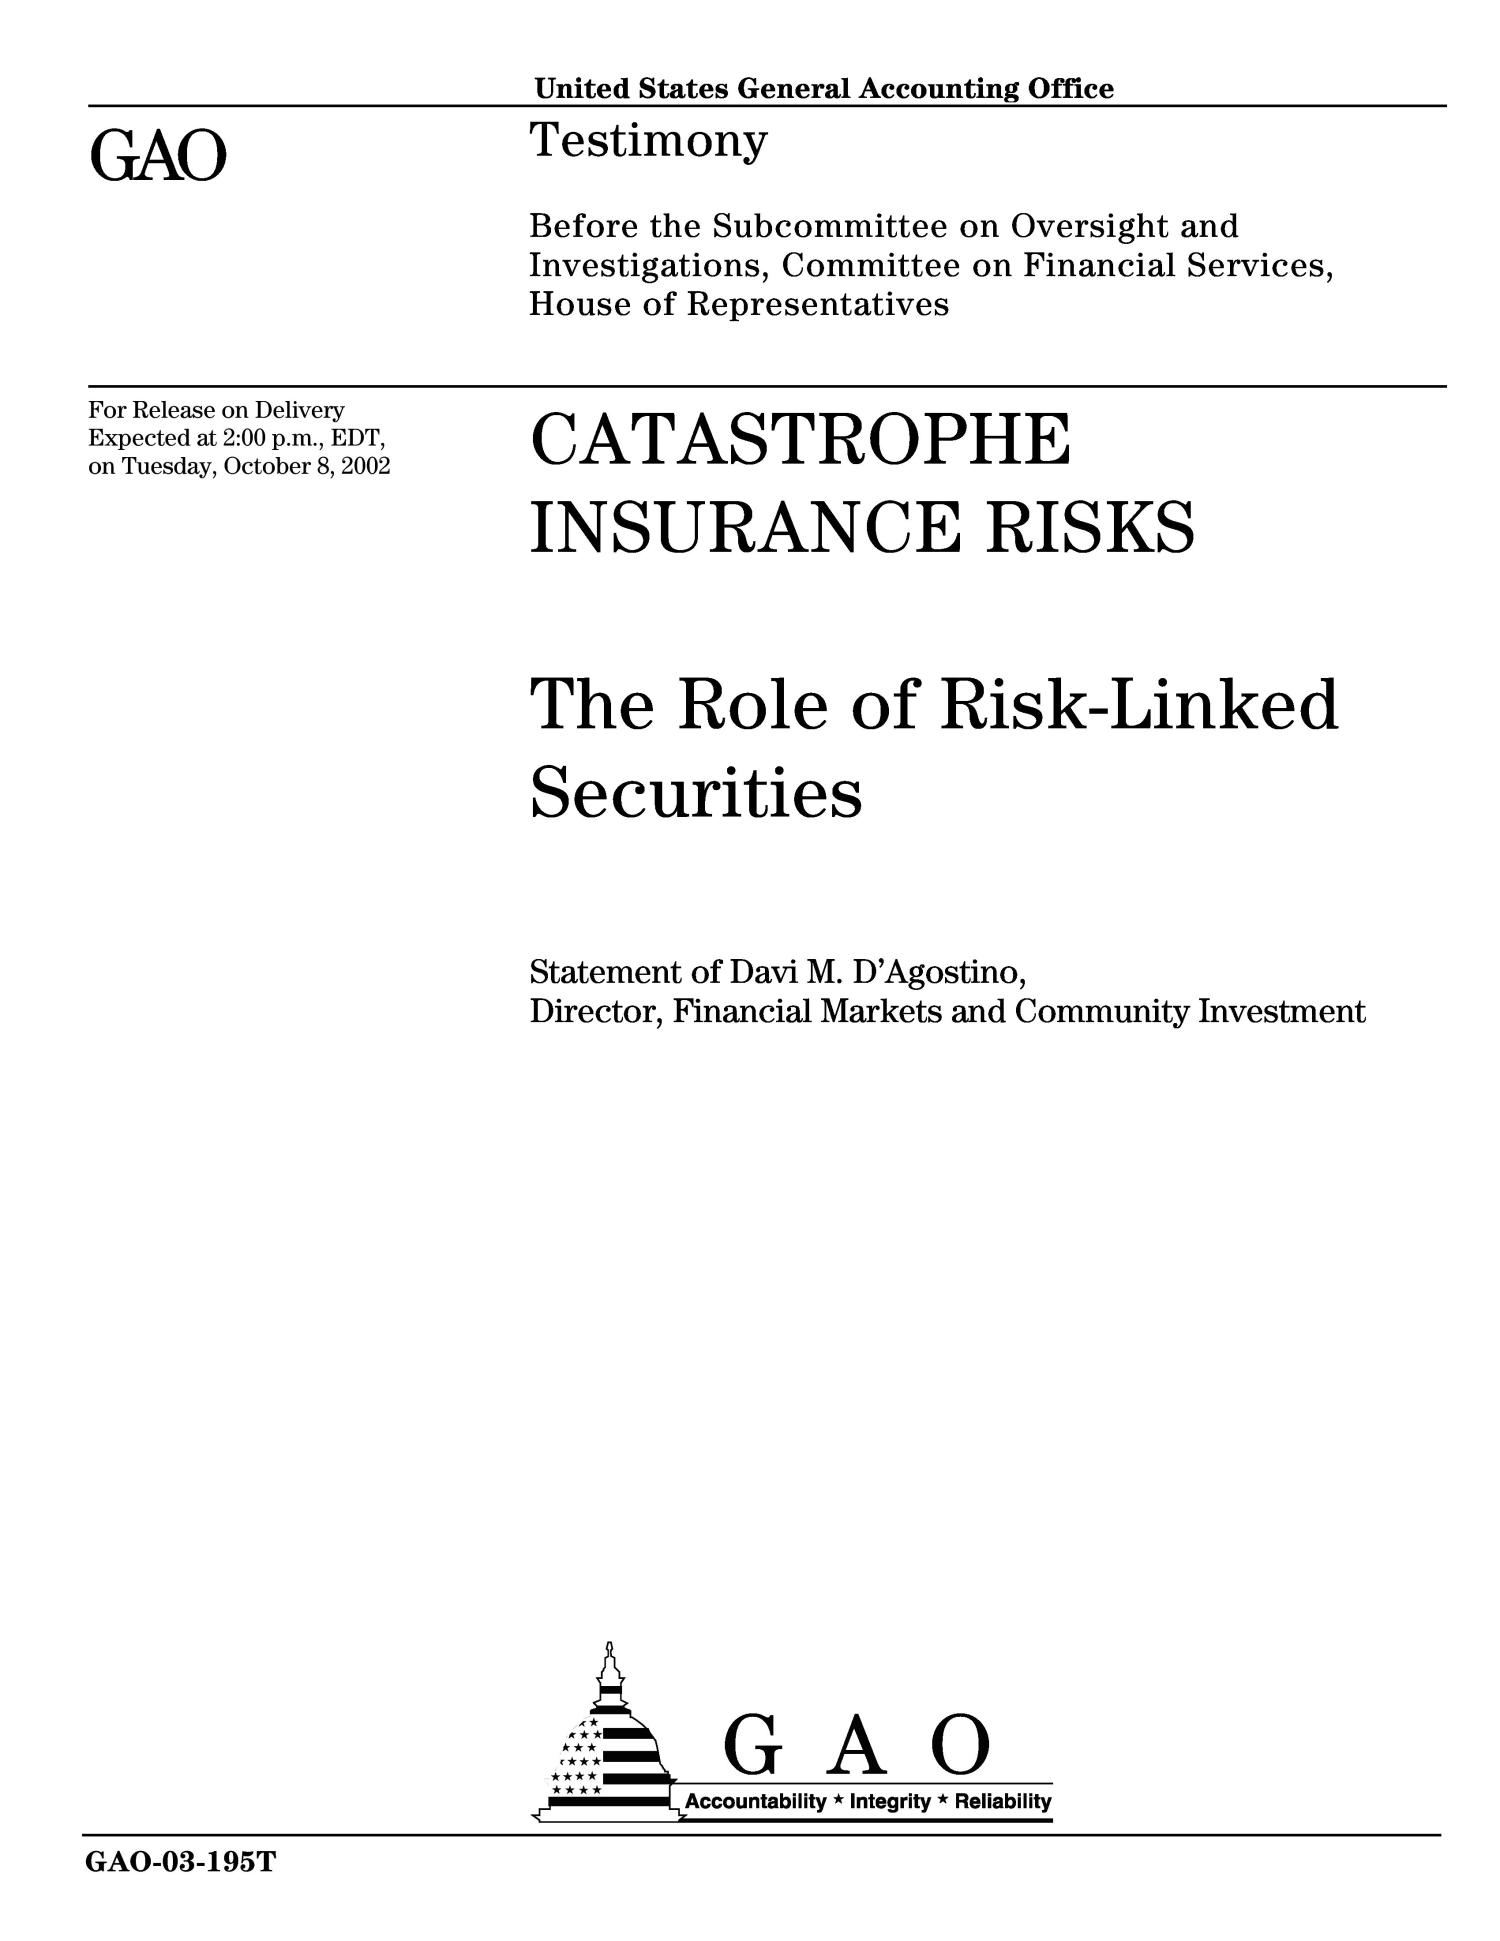 Catastrophe Insurance Risks: The Role of Risk-Linked Securities                                                                                                      [Sequence #]: 1 of 8